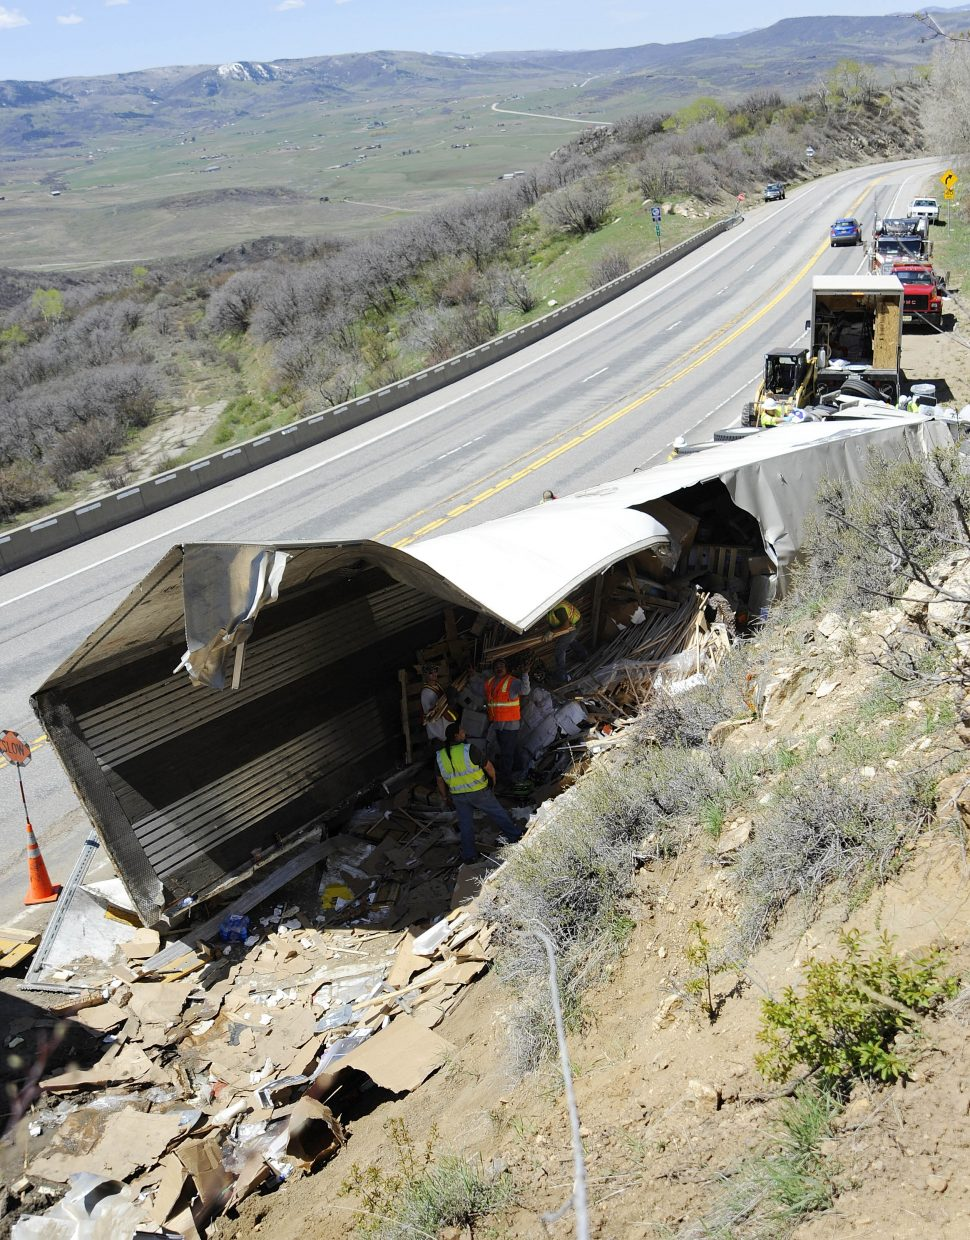 Workers remove items from a semi that rolled over Friday morning on U.S. Highway 40 on Rabbit Ears Pass. No one was injured in the crash.